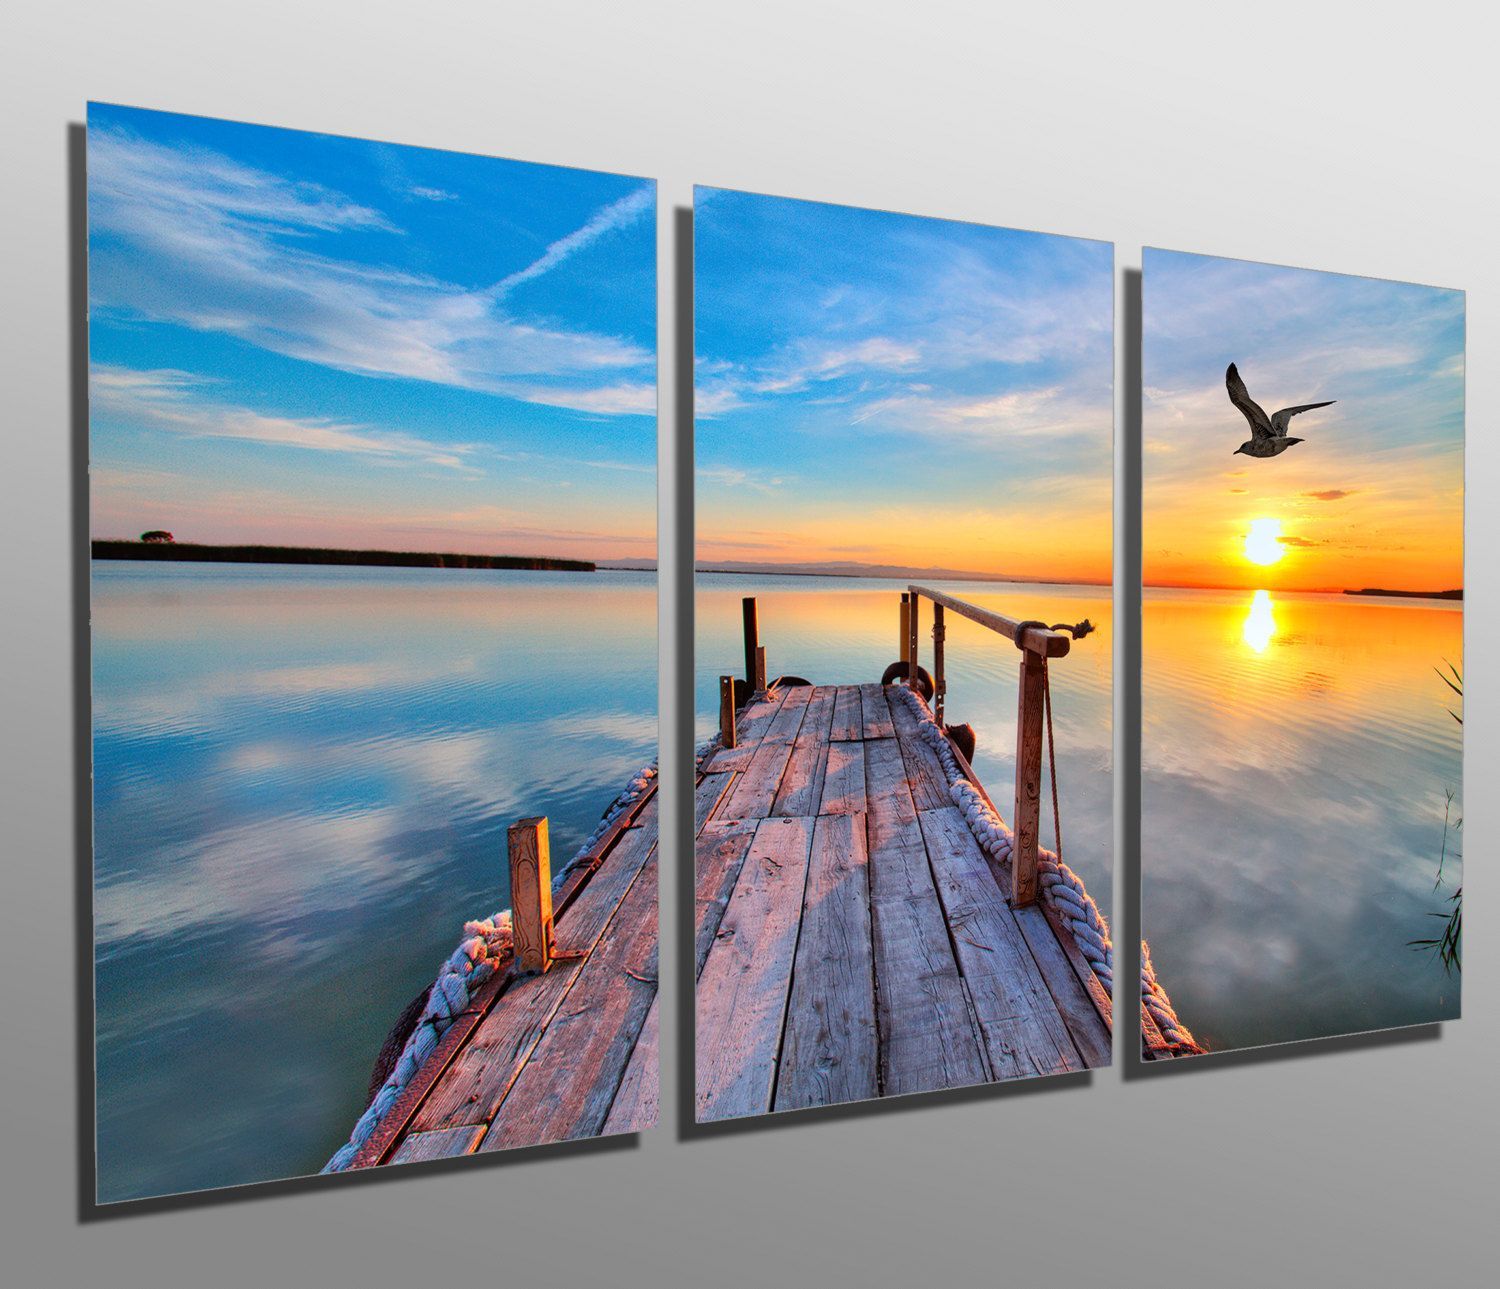 PURPLE SKY DOCK CANVAS WALL ART PICTURES PRINTS DECOR LARGER SIZES AVAILABLE